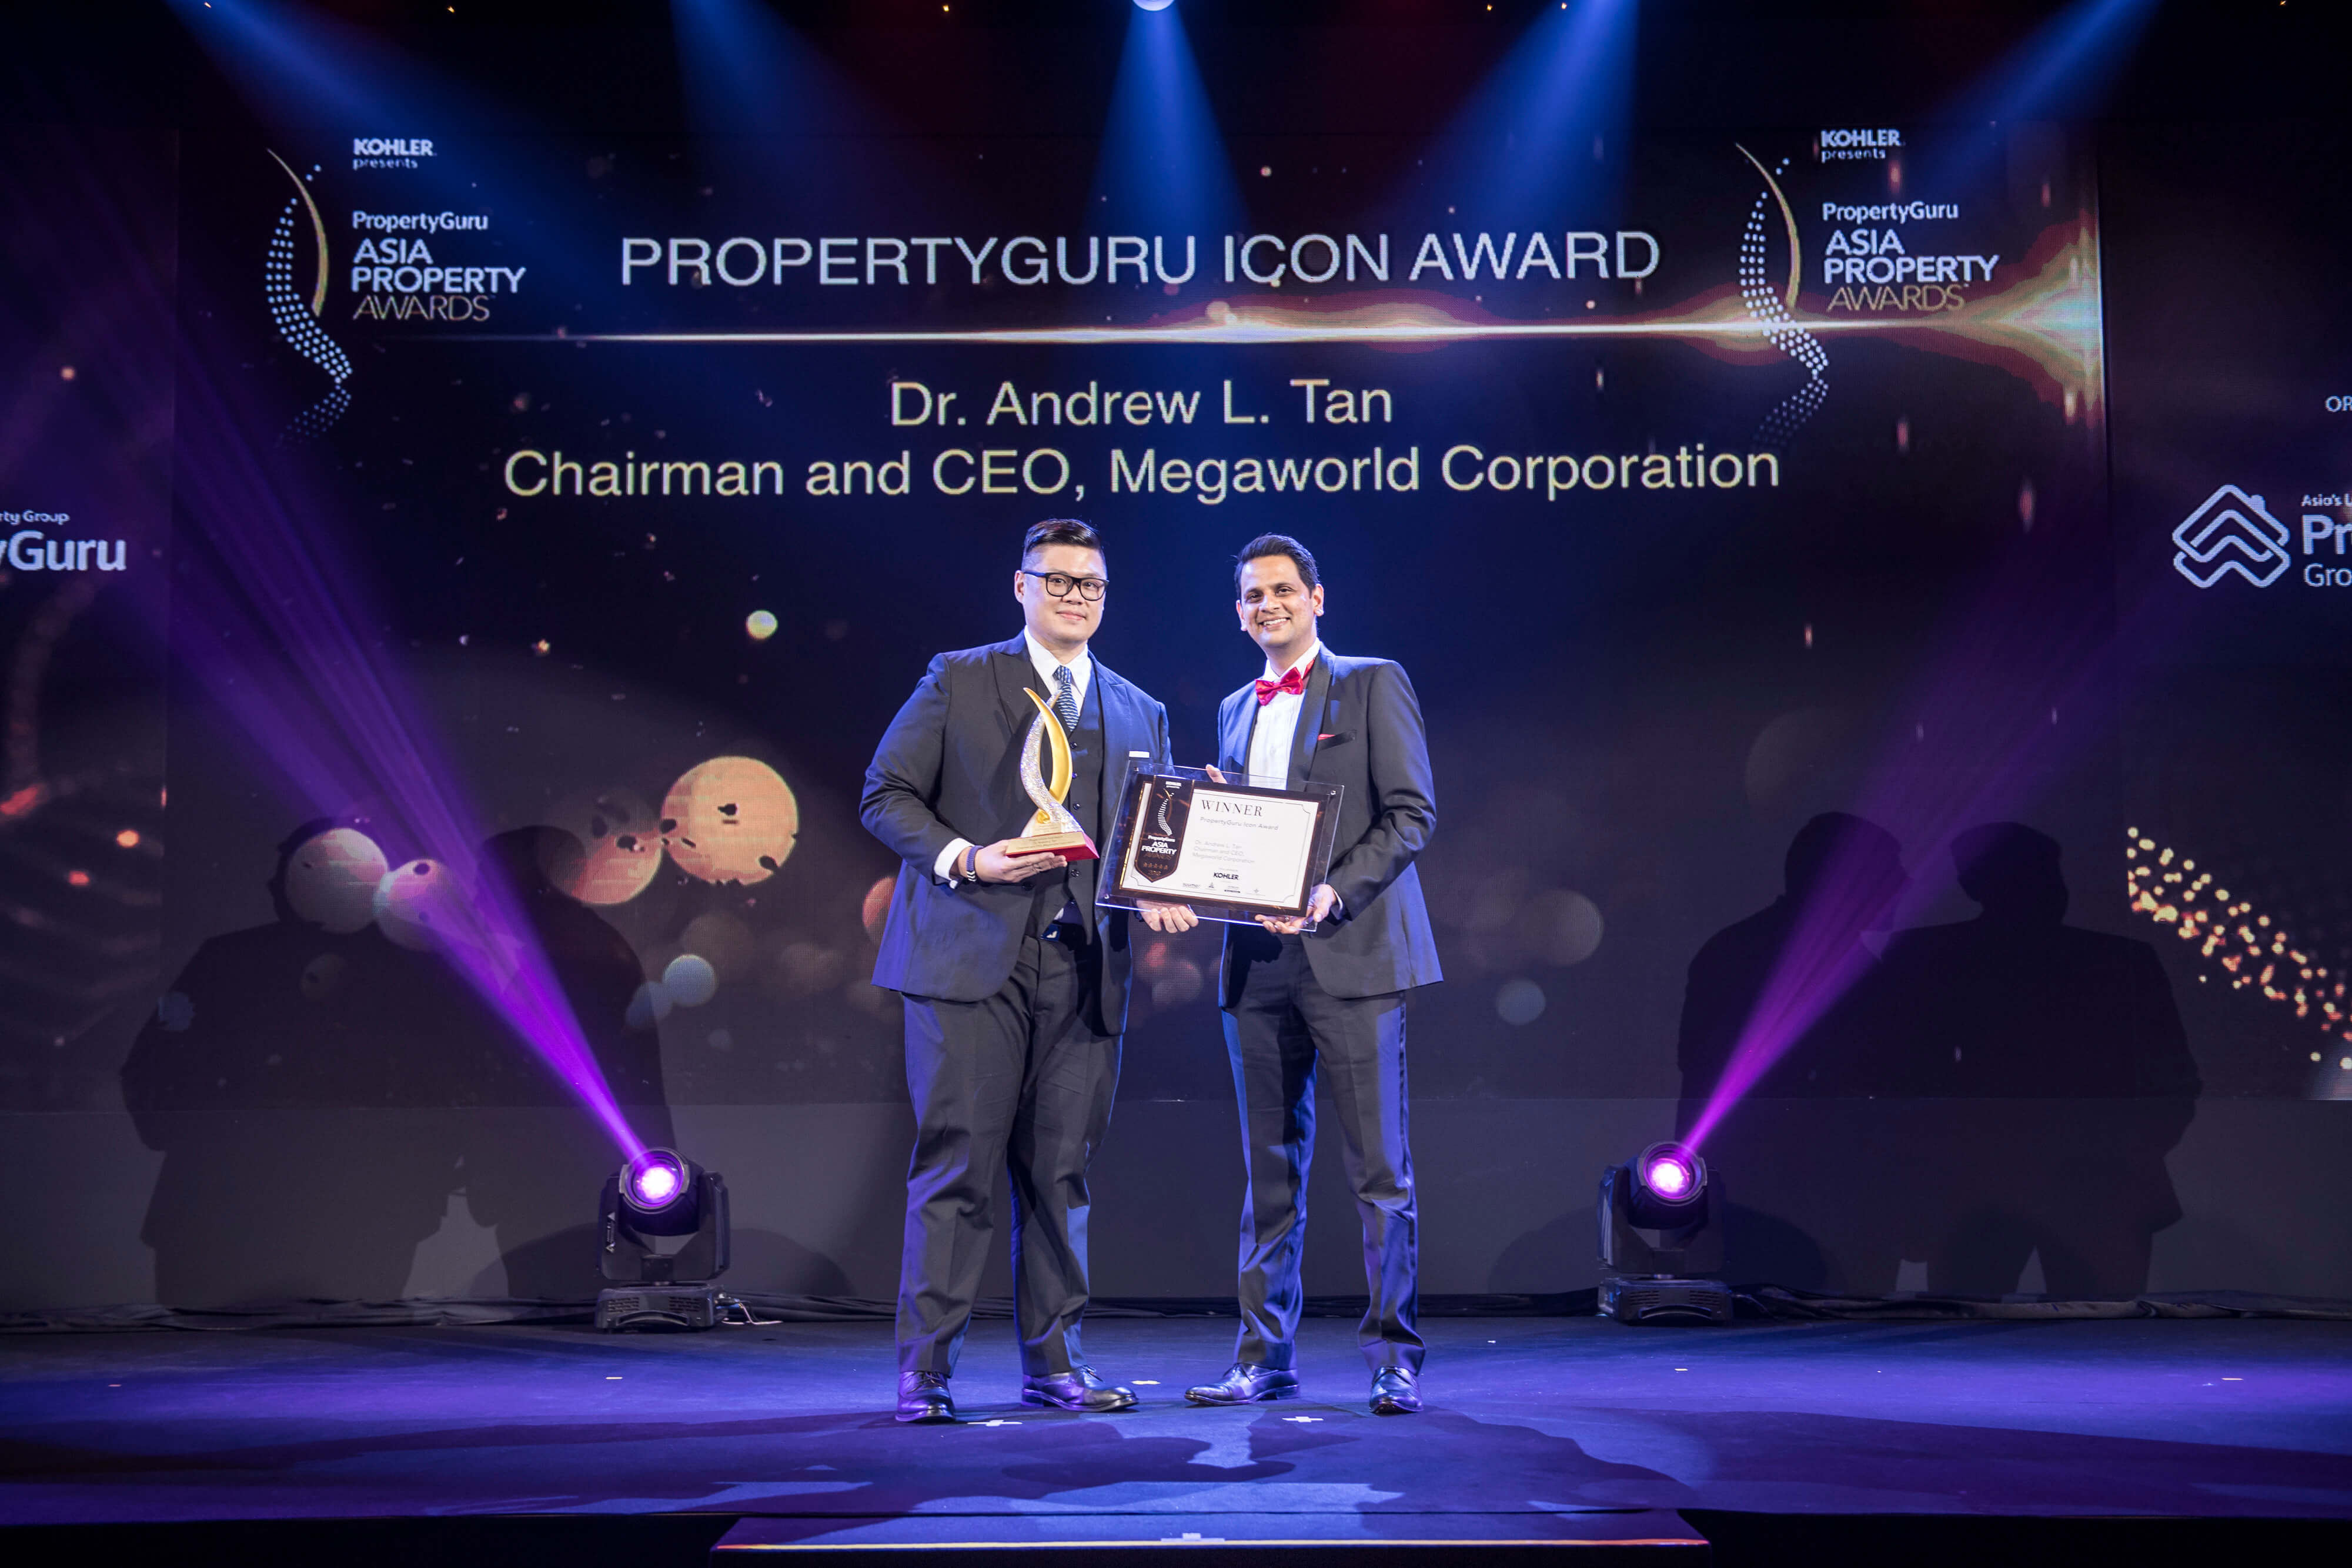 PropertyGuru Group CEO Hari V. Krishnan presents the Icon Award to the son of Megaworld chairman and CEO Dr. Andrew L. Tan